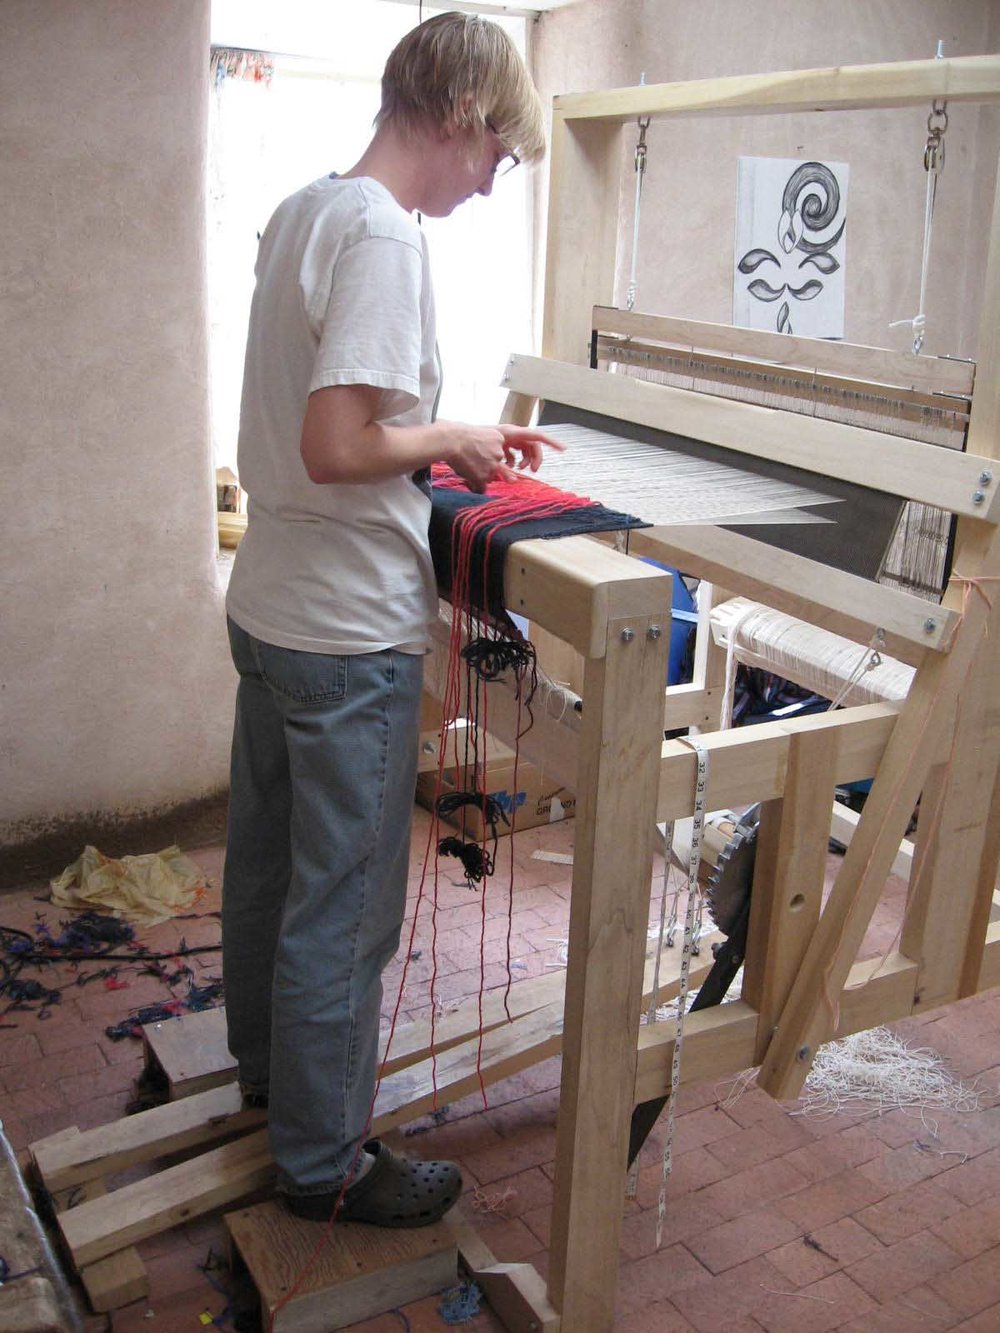 My first tapestry loom: a Rio Grande walking loom which I made with the help of my Dad in a class at Northern NM College.